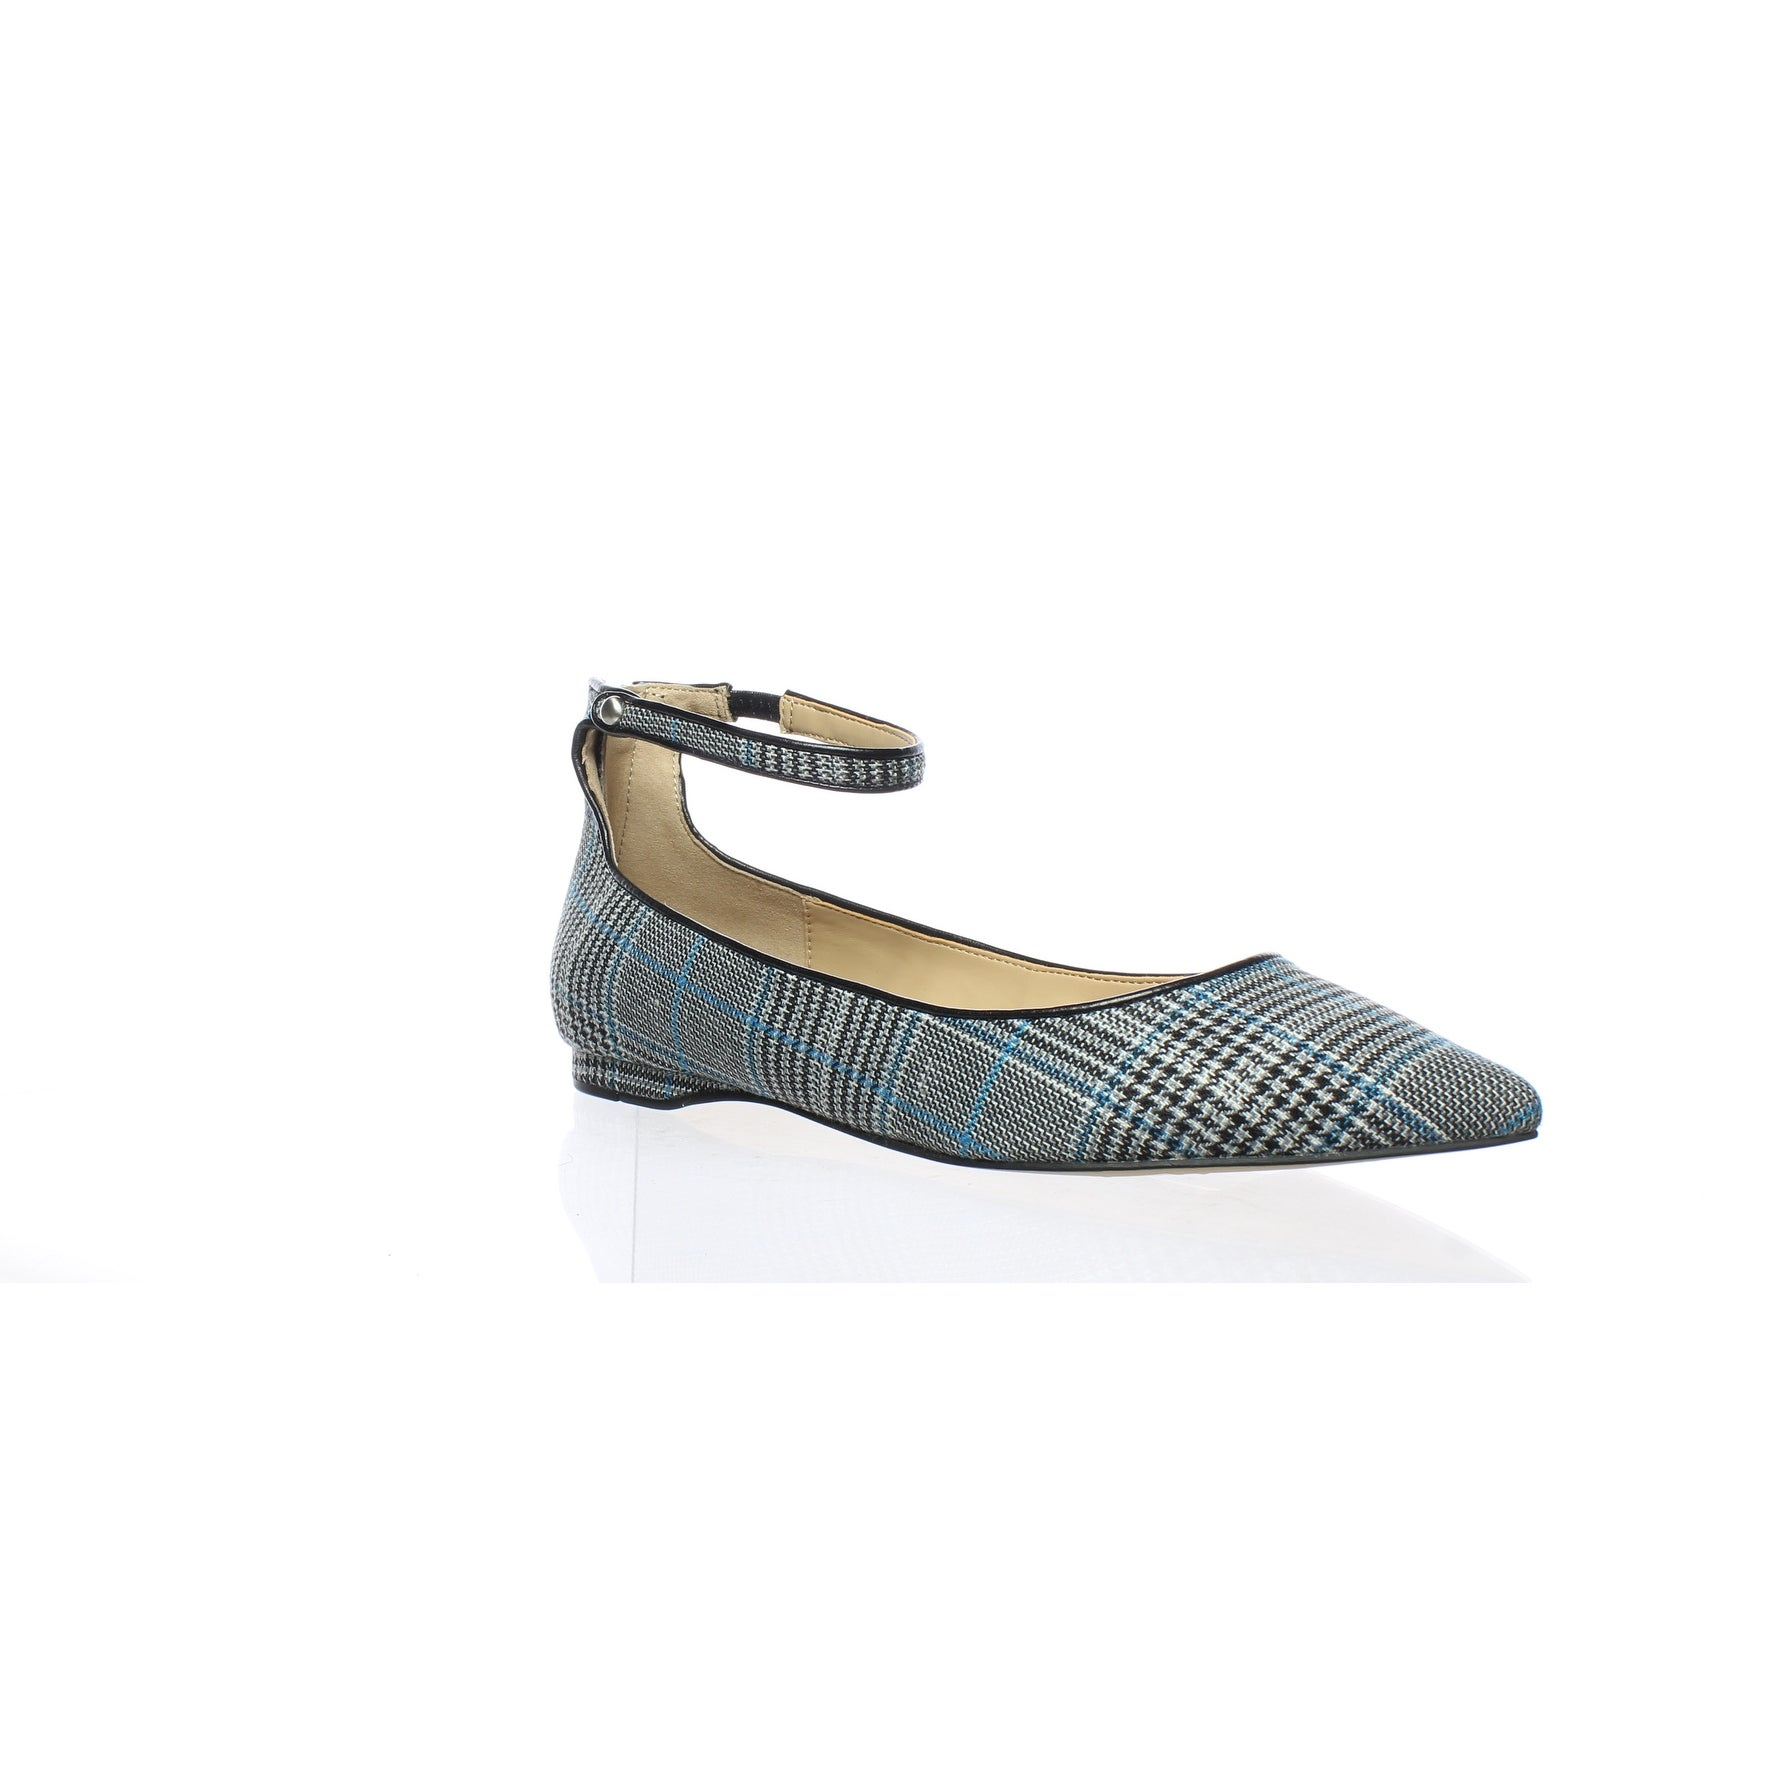 23c4cdd04 Shop The Fix Womens Evie Military Blue Ballet Flats Size 7 - On Sale ...